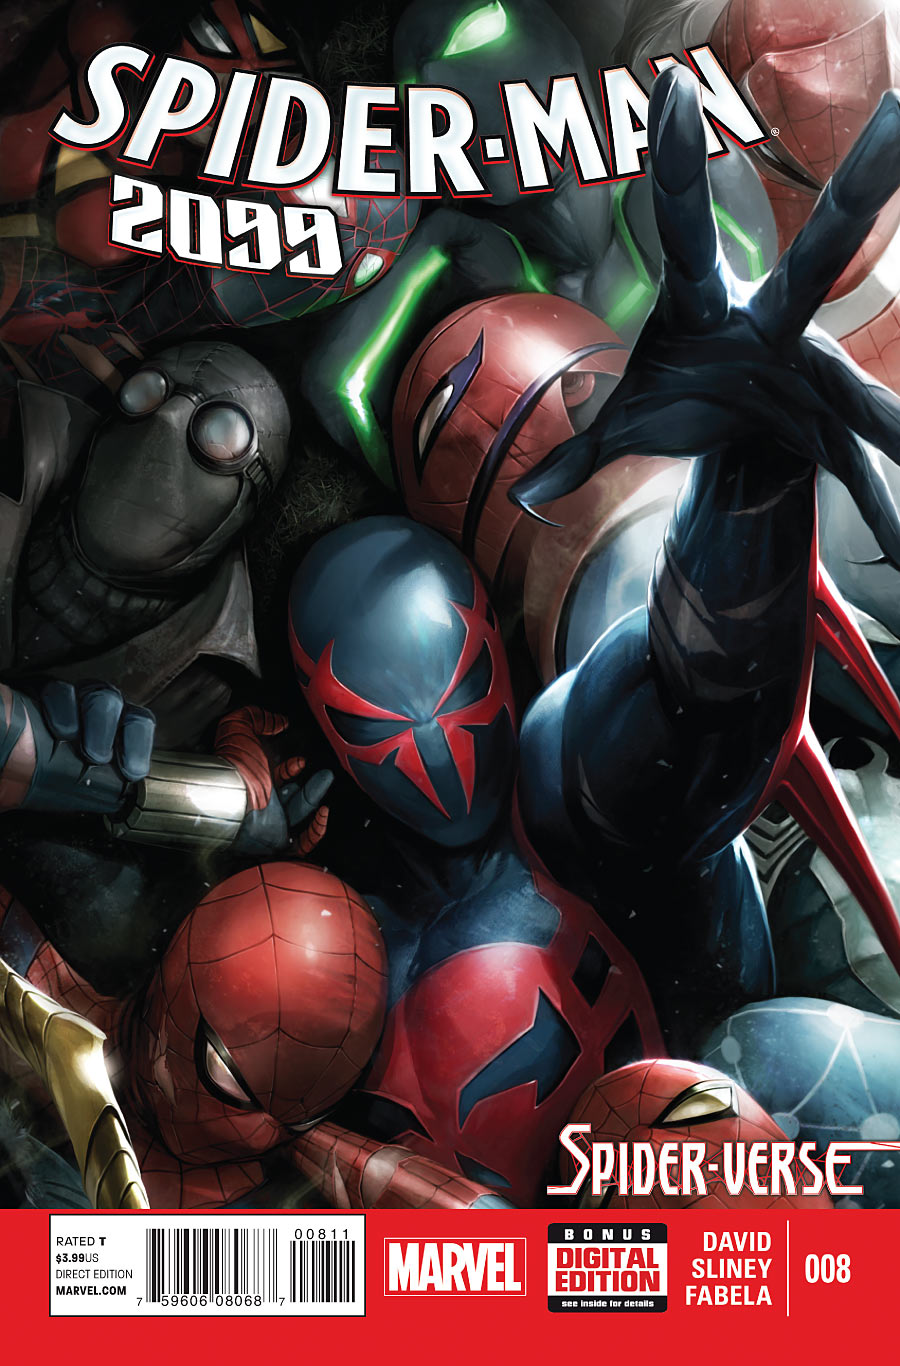 Spider-Man 2099 Vol 2 8